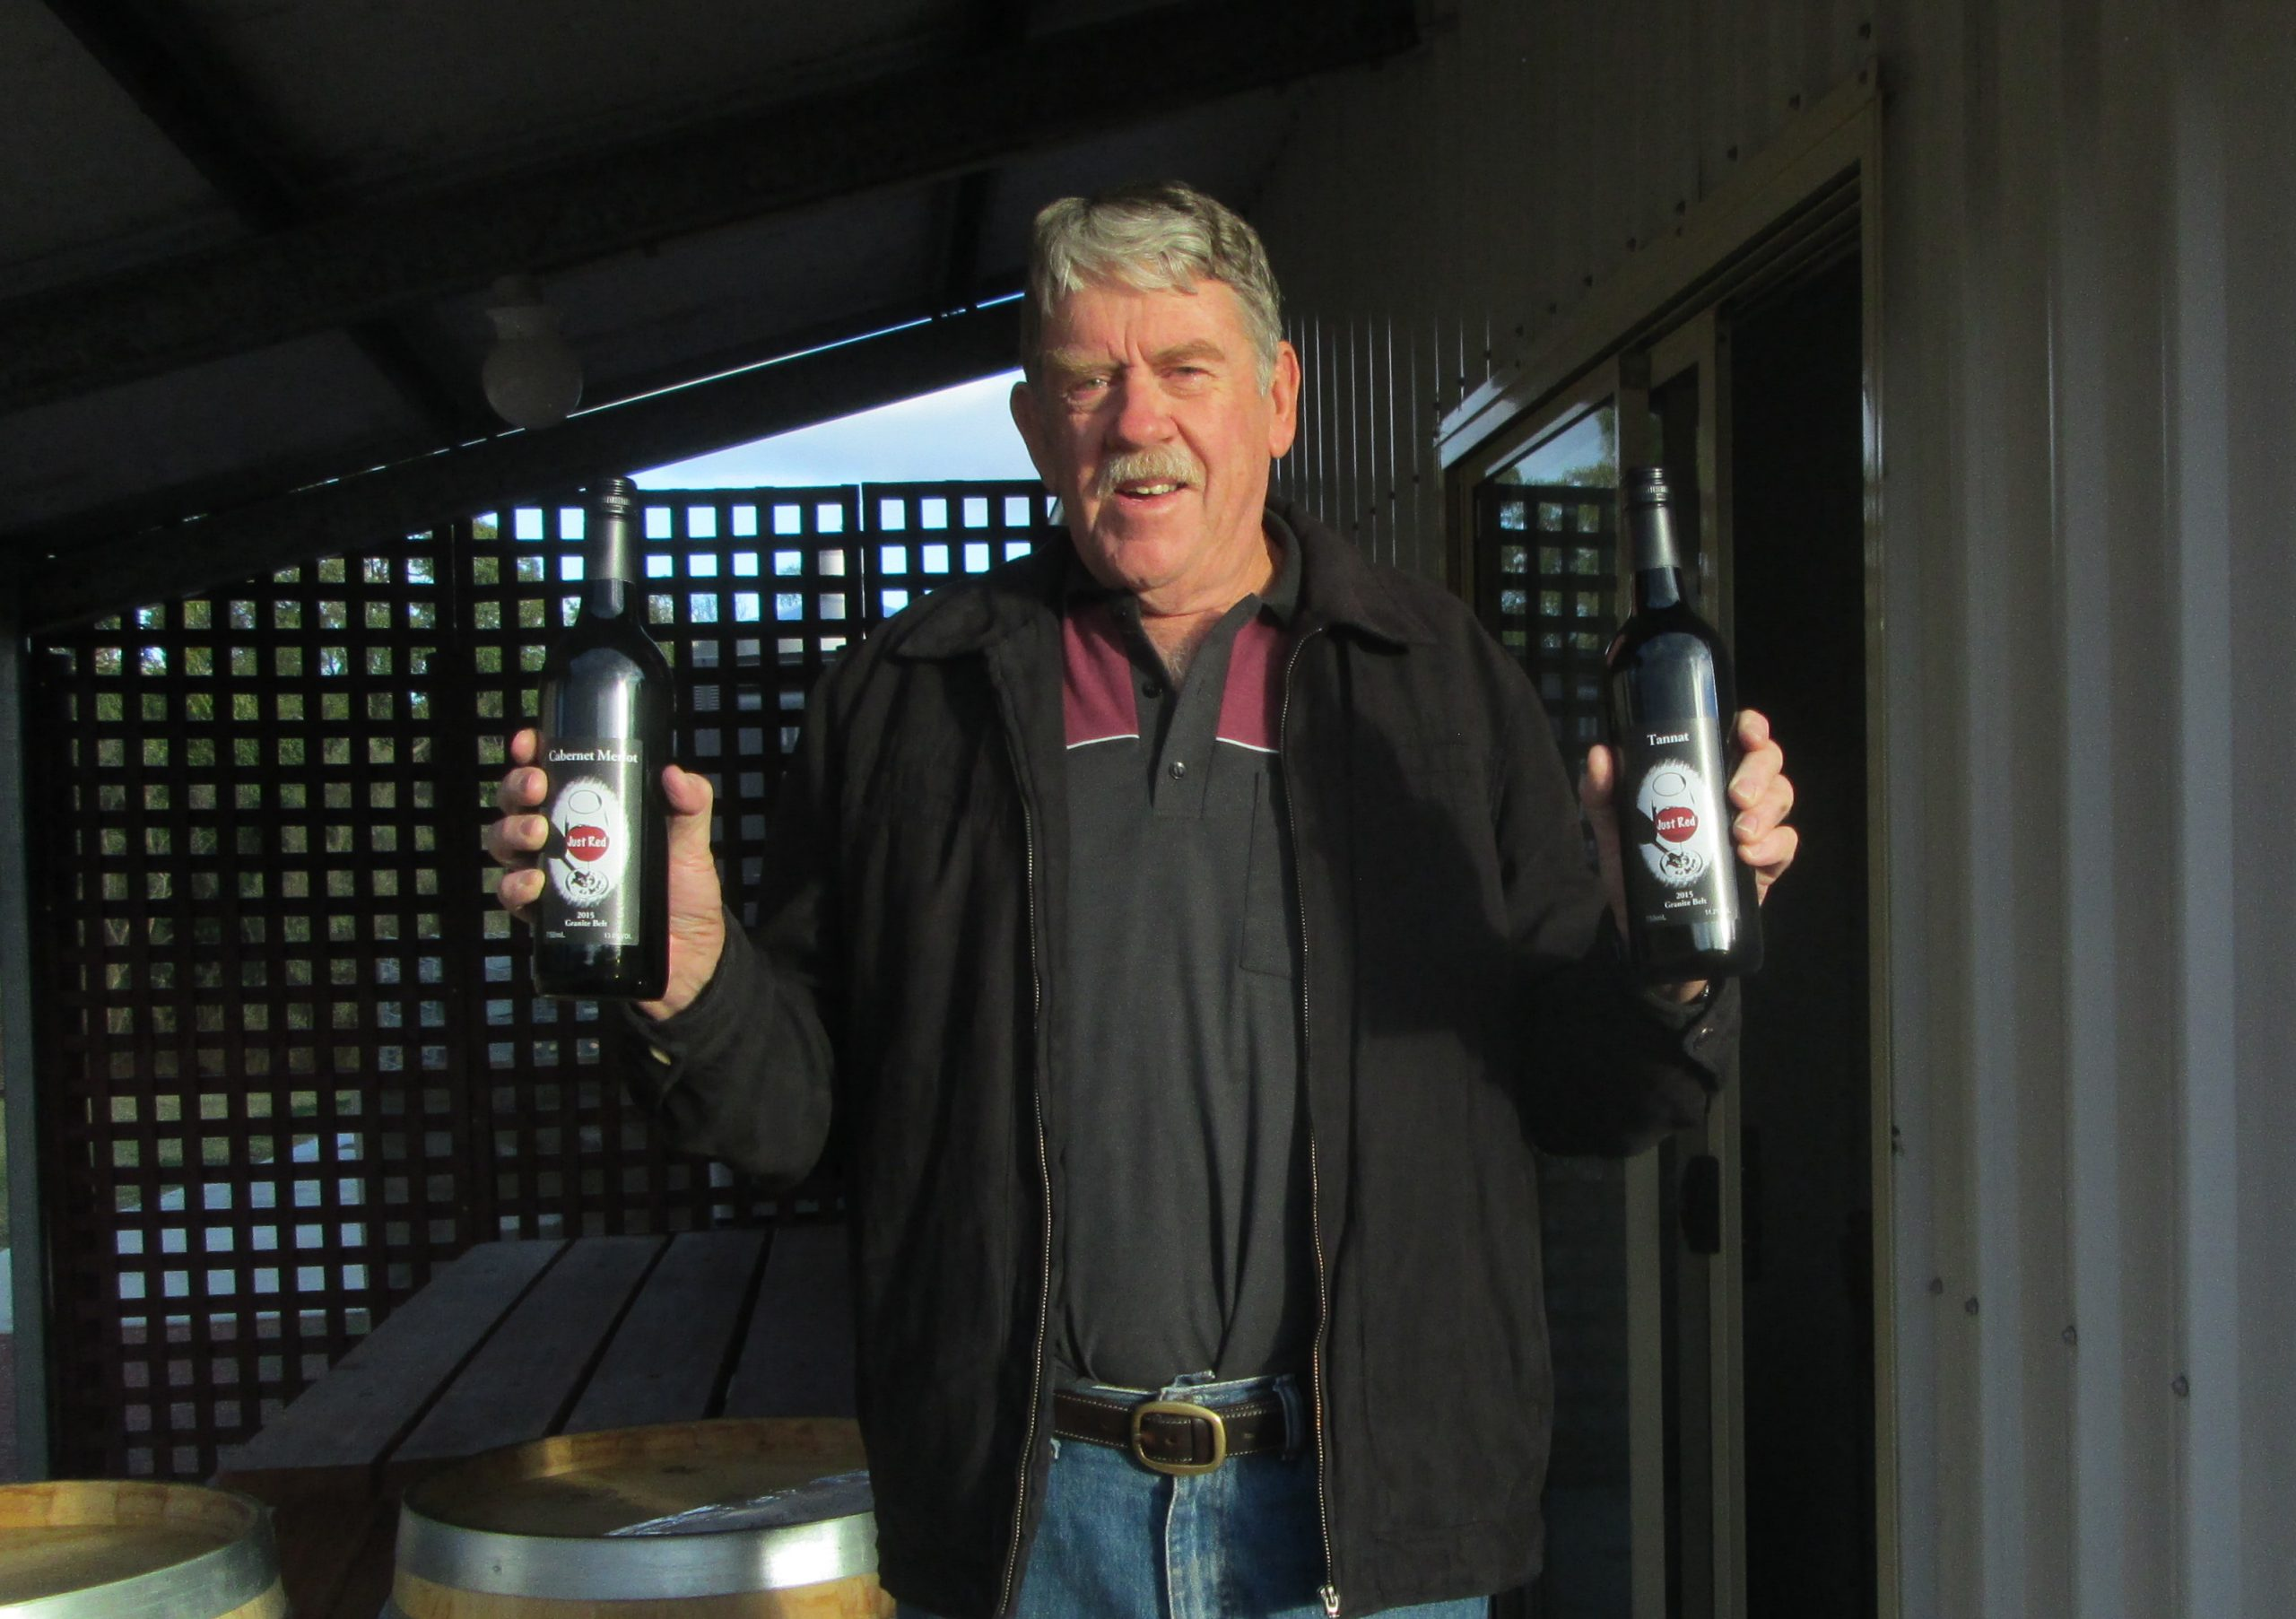 Winemaker: Tony Hassall